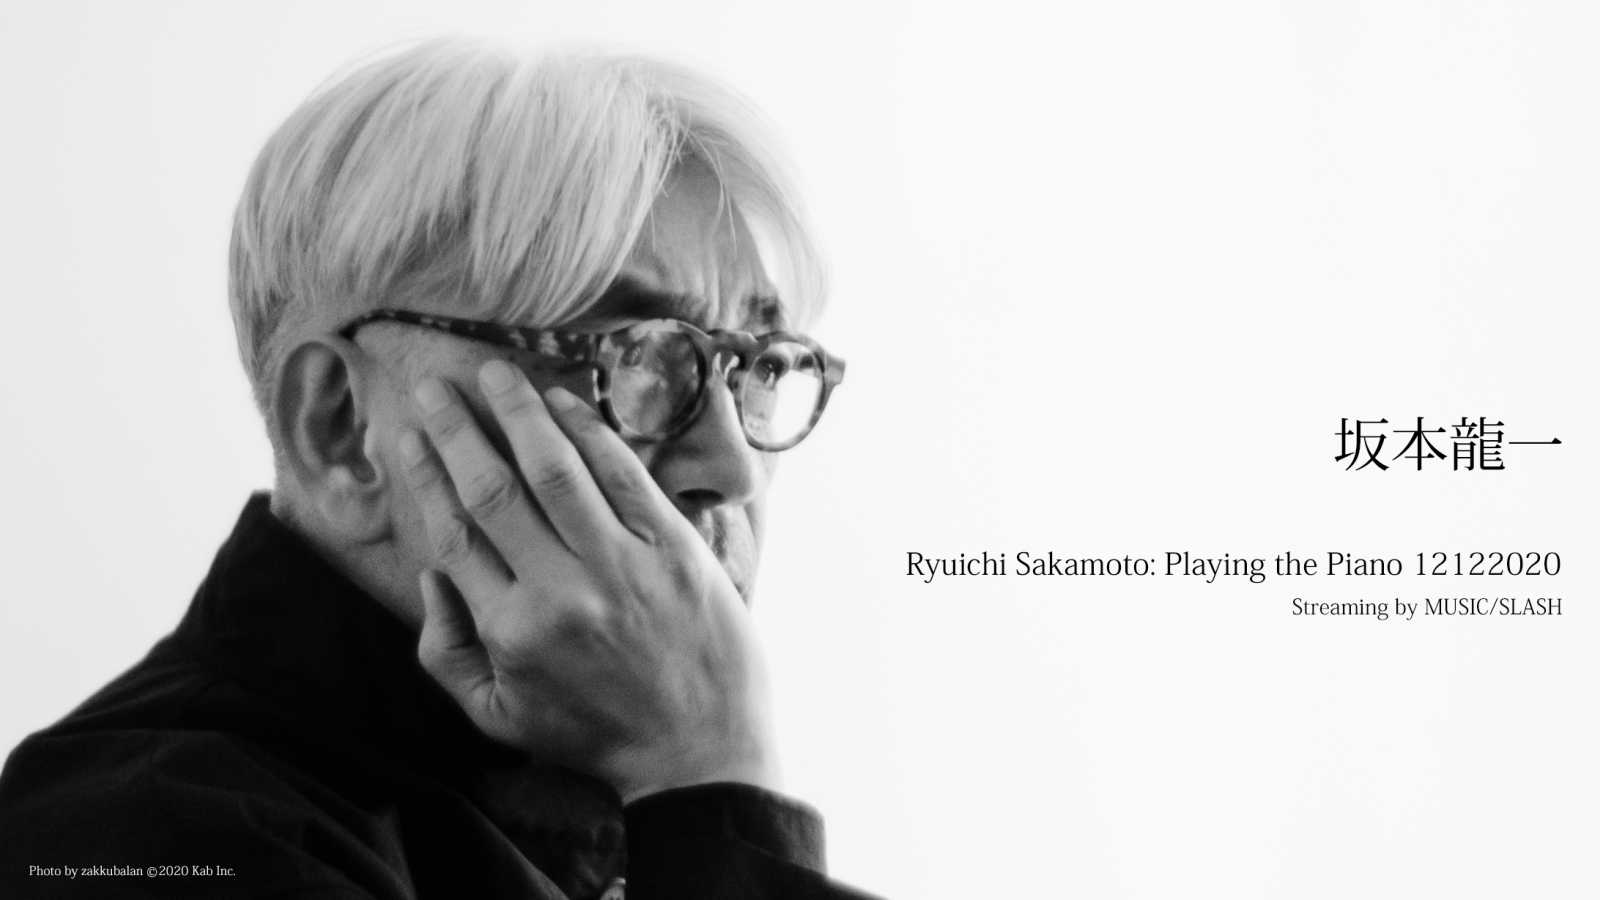 Ryuichi Sakamoto to Premiere Past Shows on YouTube Ahead of Live Streaming Concert  © Ryuichi Sakamoto. All rights reserved.